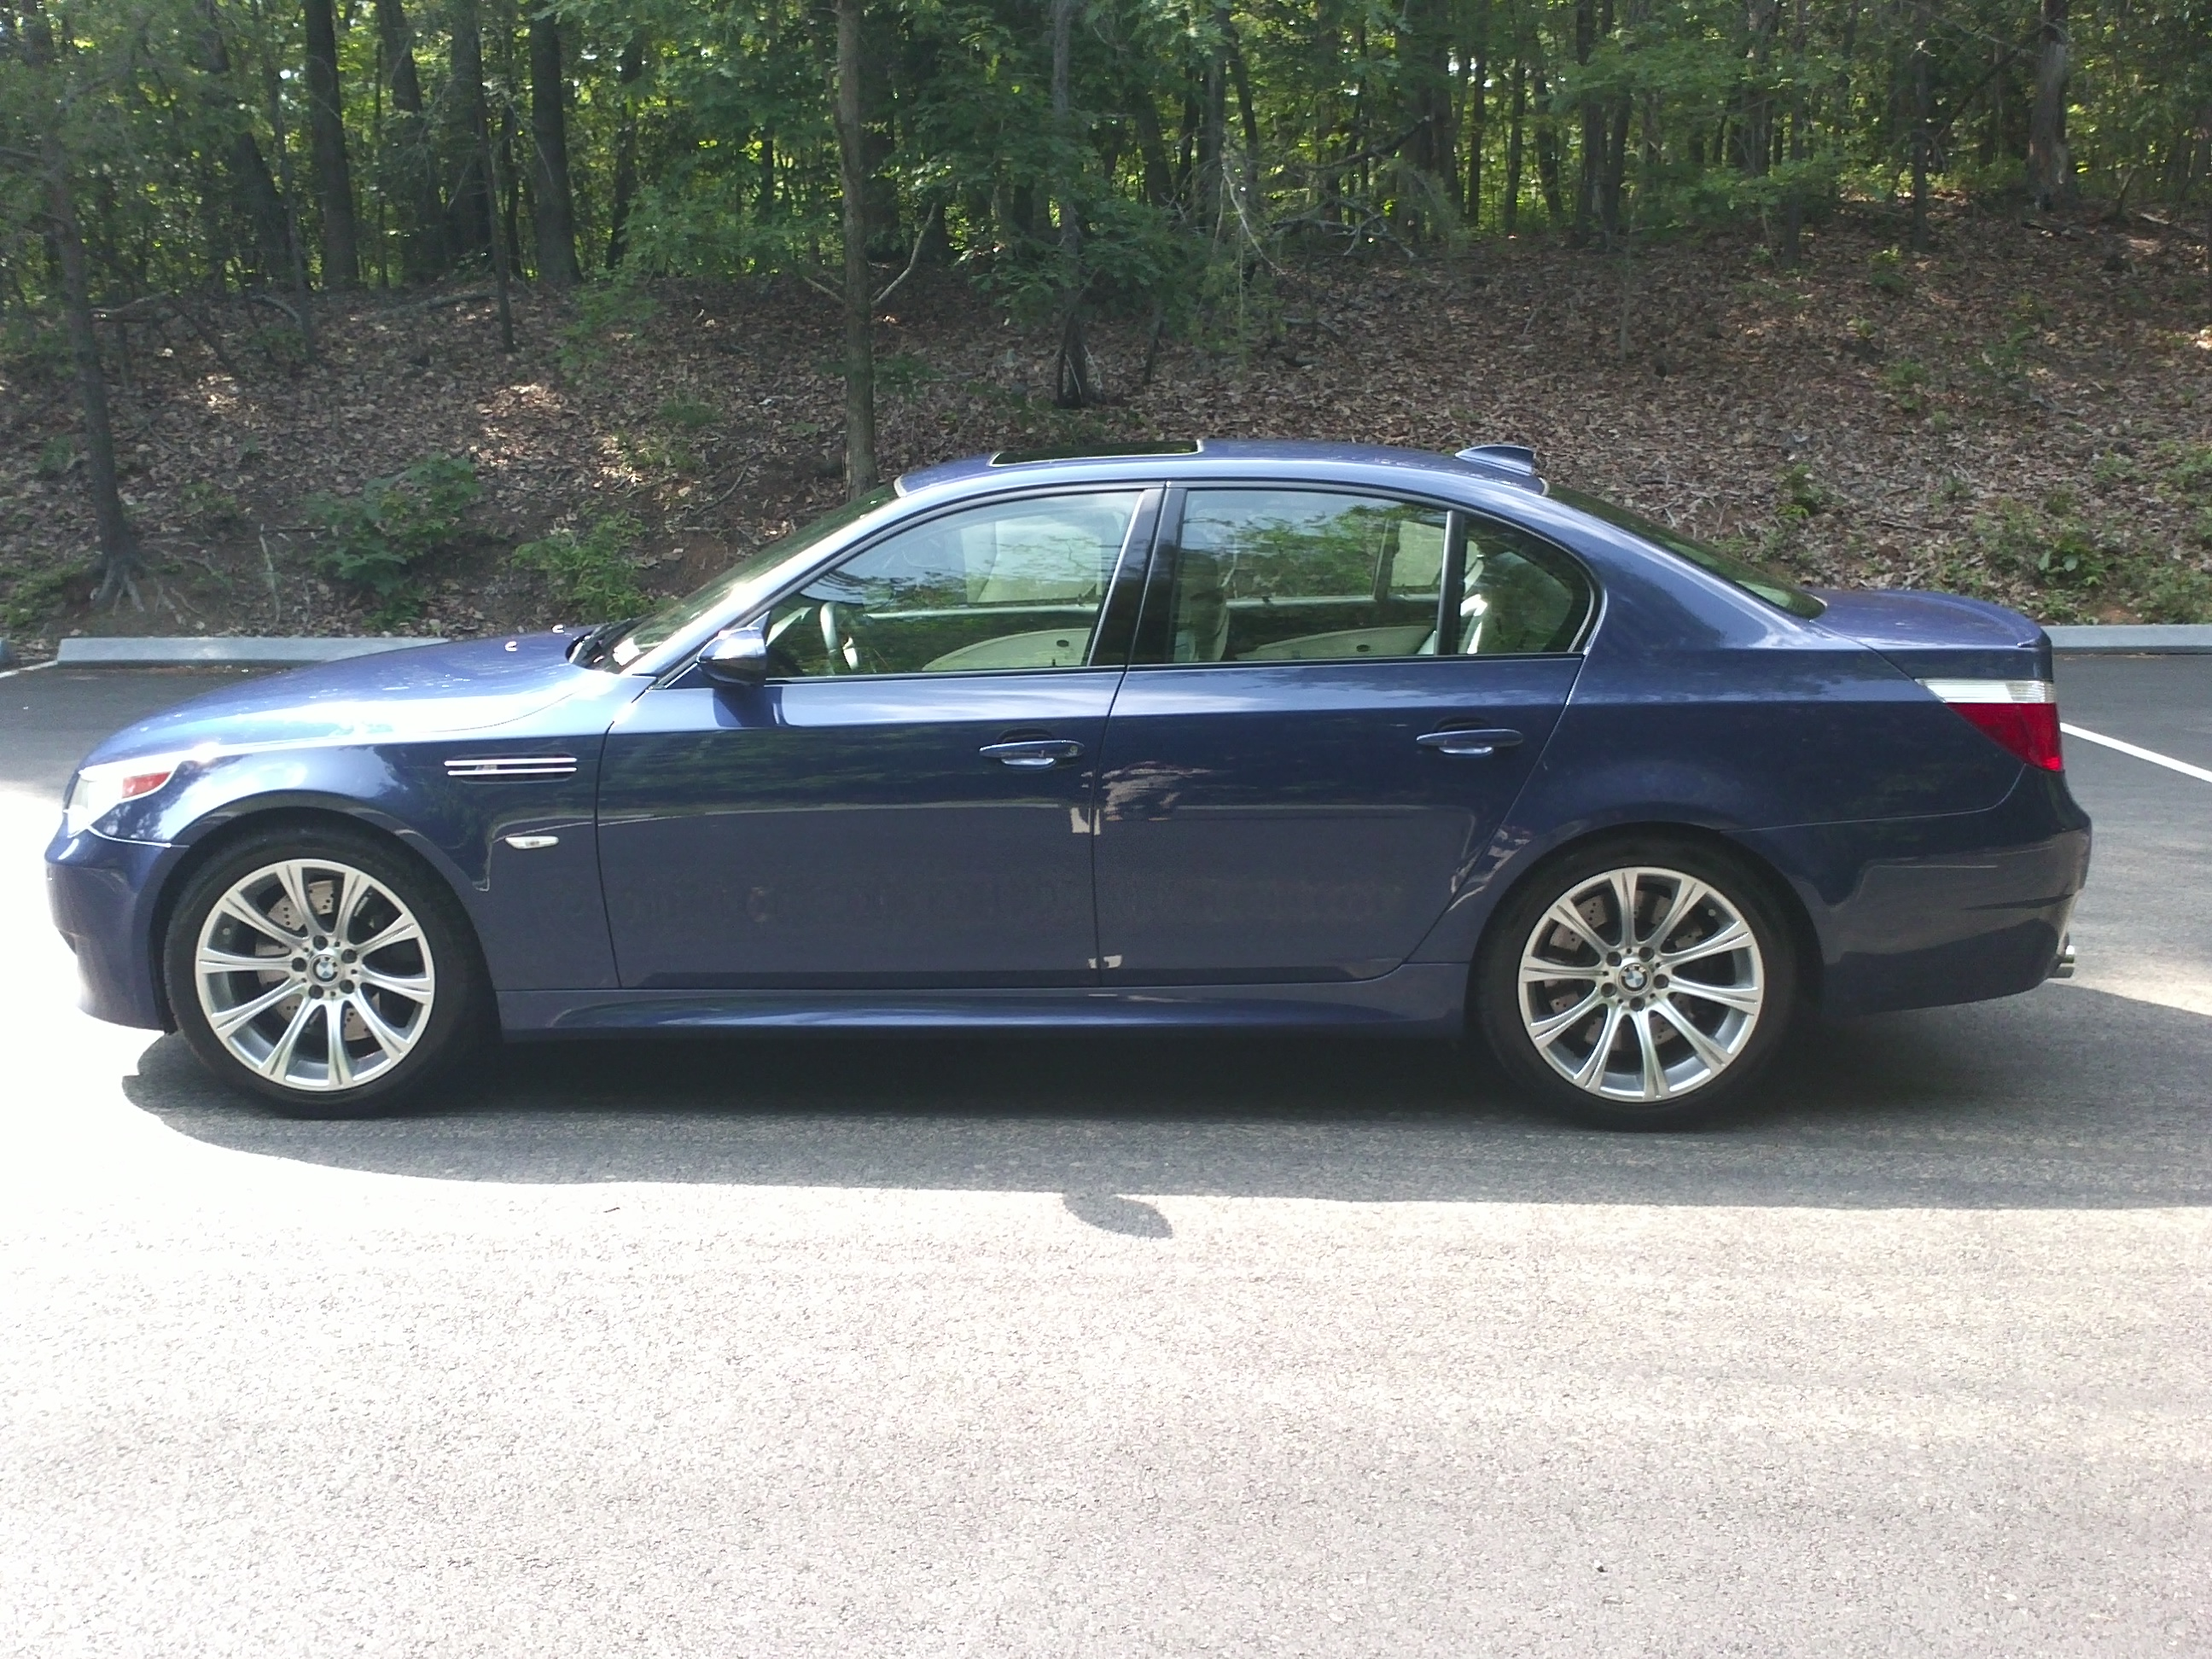 Used Cars For Sale In Northern Va: E60 (03-10) For Sale 2007 M5 For Sale (Northern Virginia